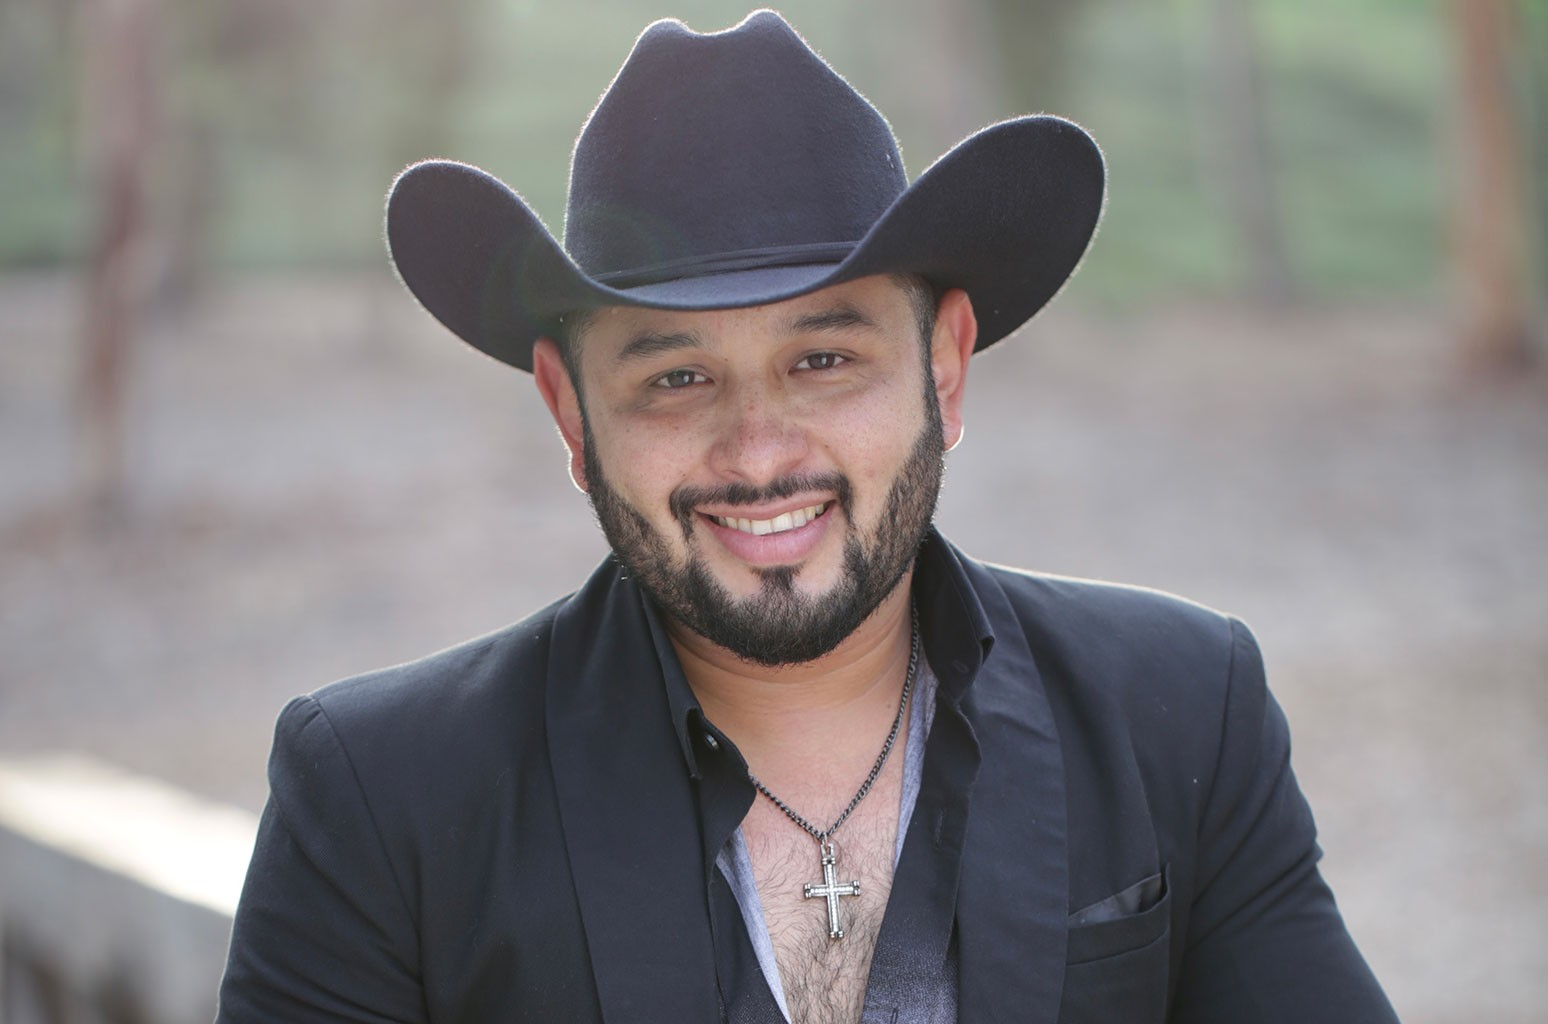 Regional Mexican Singer-Songwriter Jerry Demara Dies at 45 Due to COVID-19